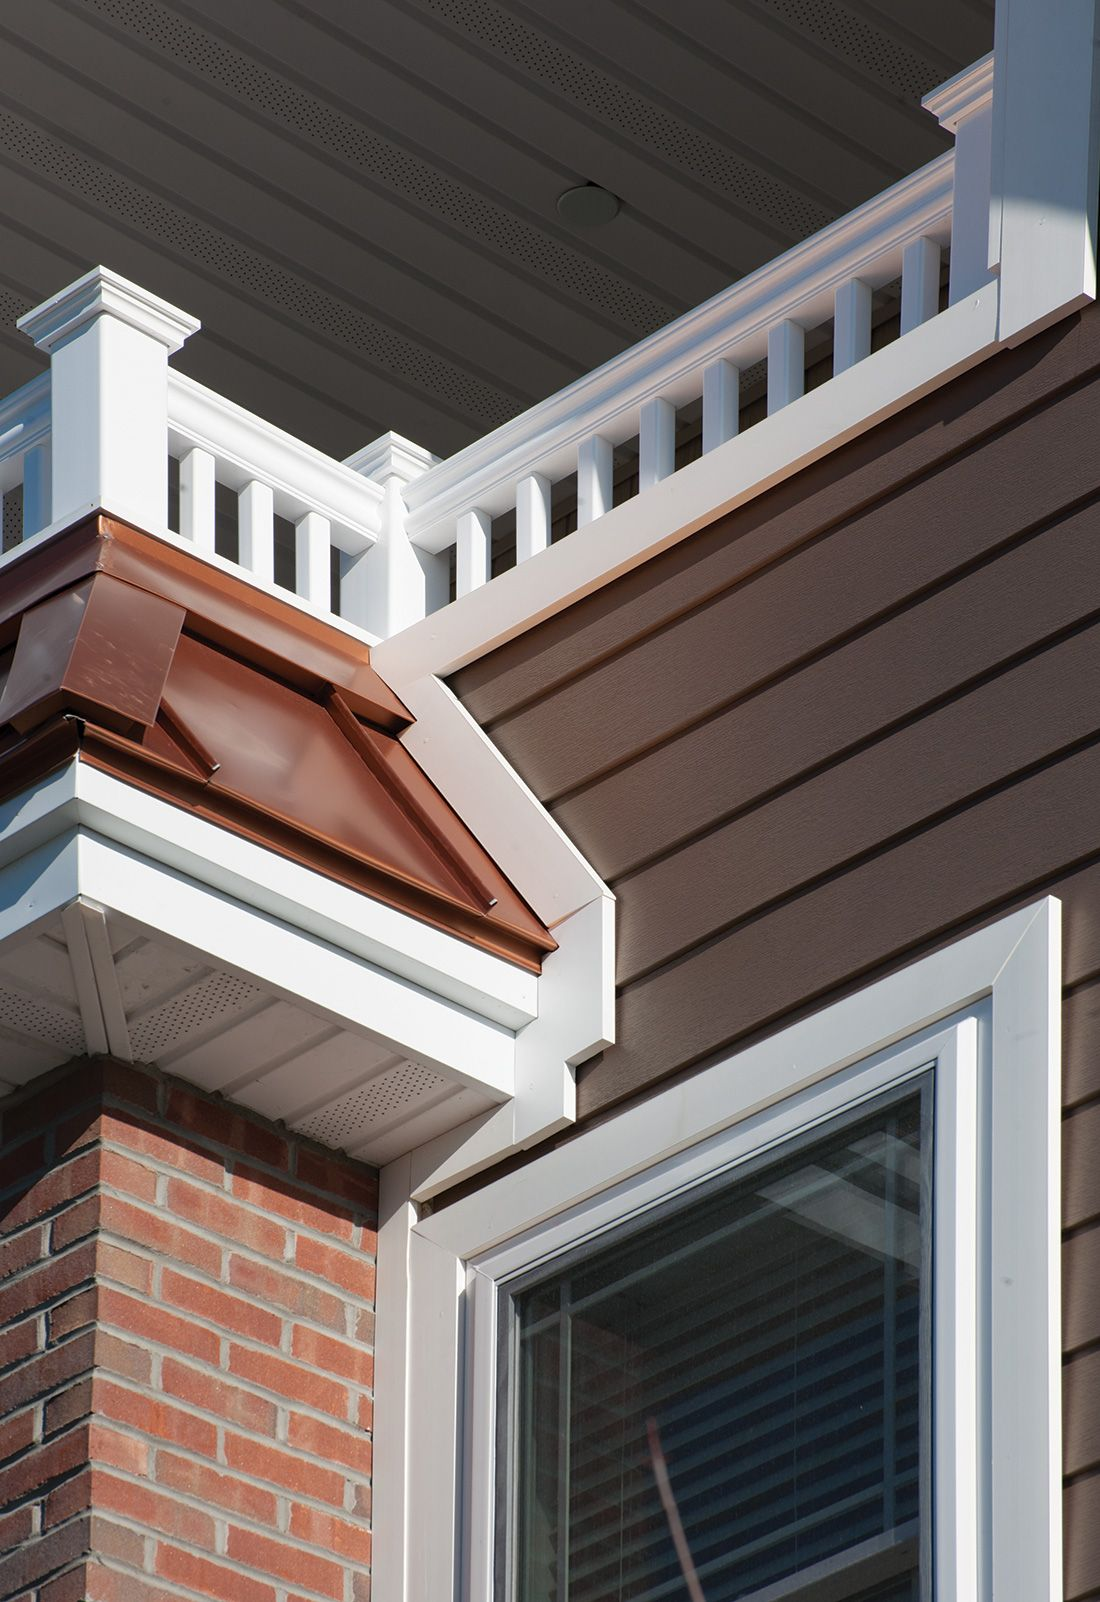 Royal Celect Siding Picture Gallery Nj Image Photos